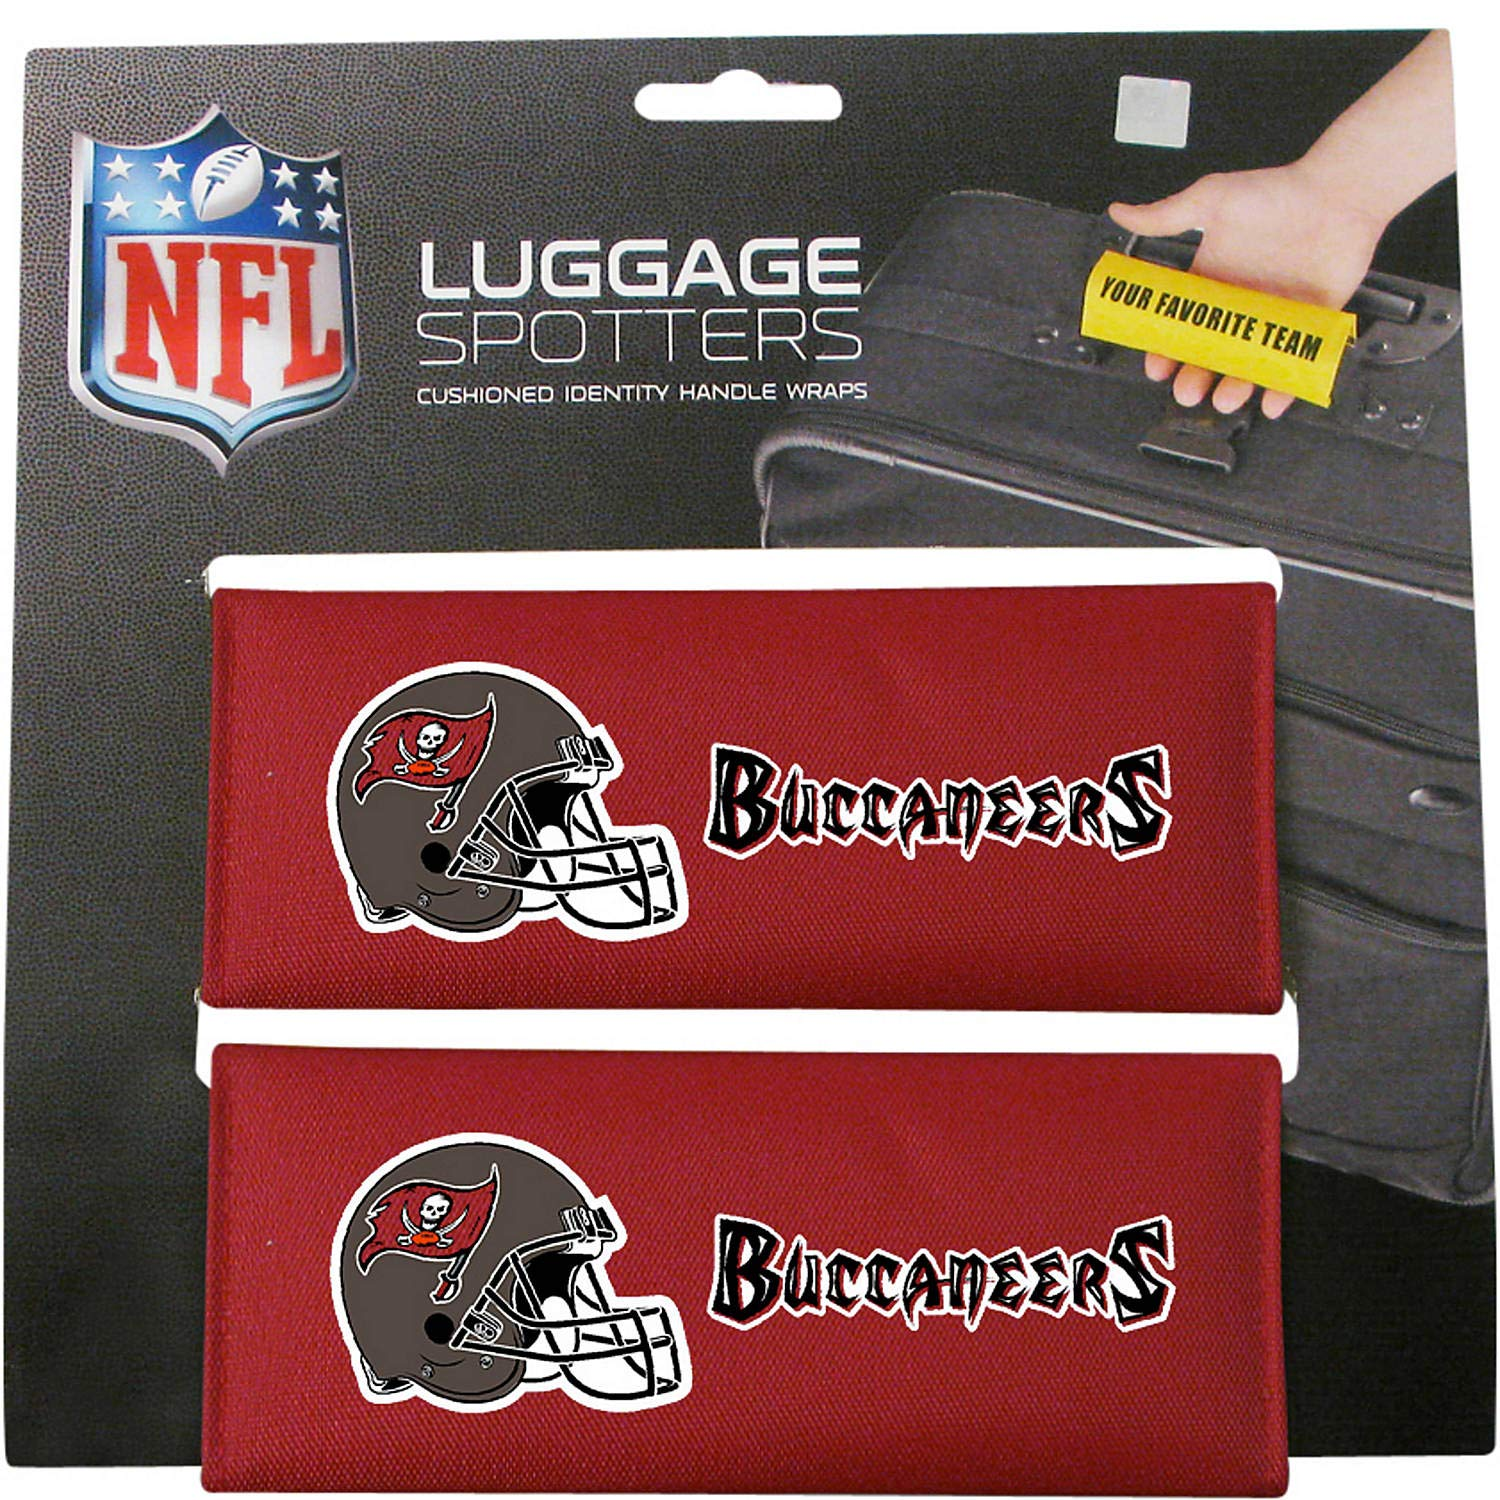 50% OFF! BUCS Luggage Spotter Suitcase Handle Wrap Bag Tag Locator with I.D. Pocket - CLOSEOUT! ALMOST GONE! by Luggage Spotter